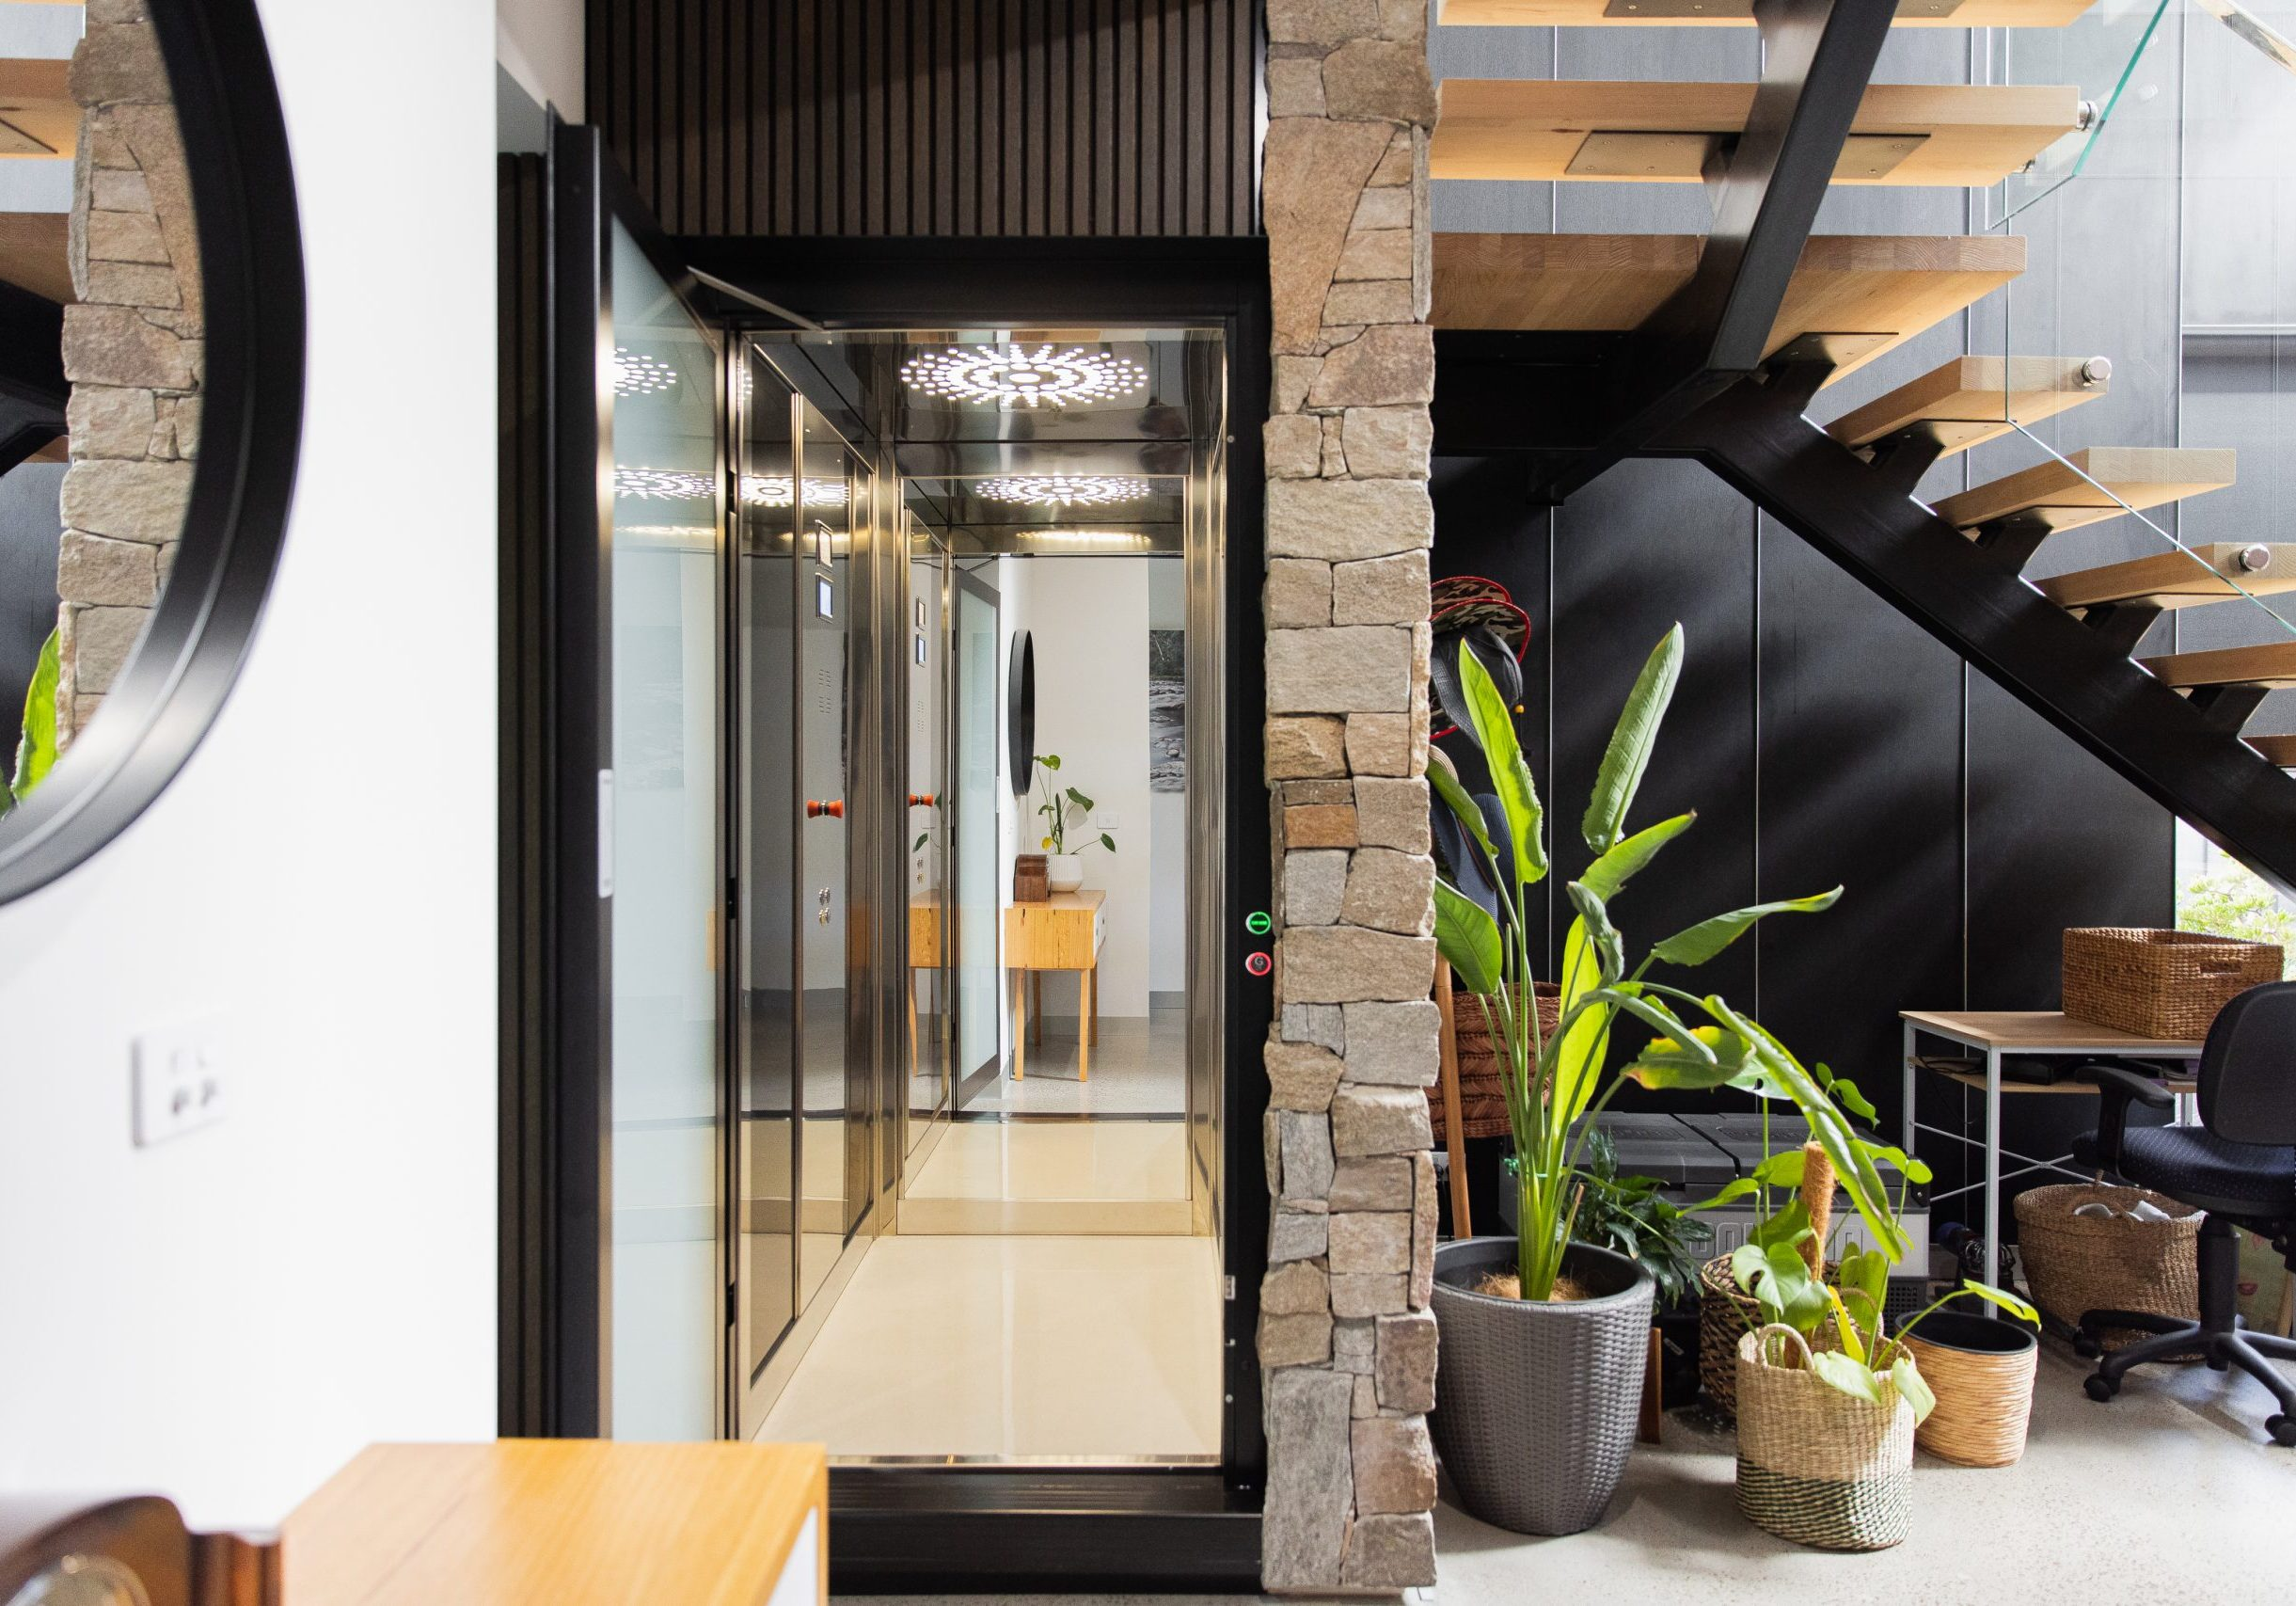 home elevator with open door, full length mirror on back wall and digital display. shaft is timber and render with stone tiles.